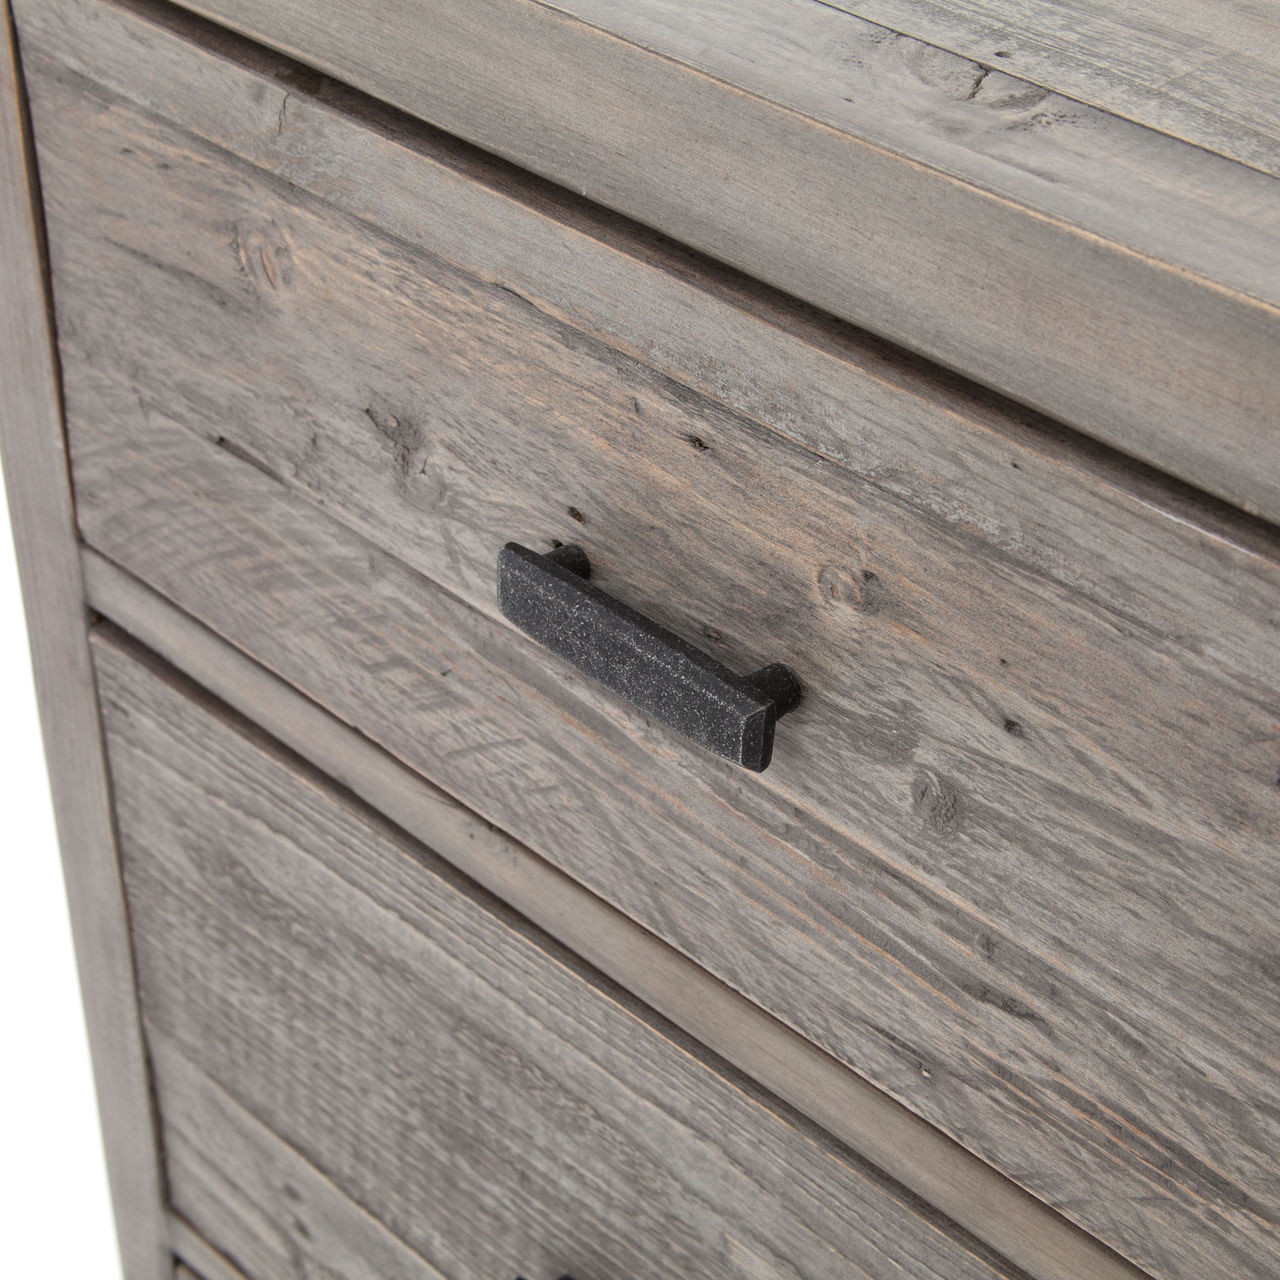 ... Caminito Grey Reclaimed Wood Chest of Drawers ... - Caminito Grey Reclaimed Wood 6 Drawer Tall Chest Zin Home